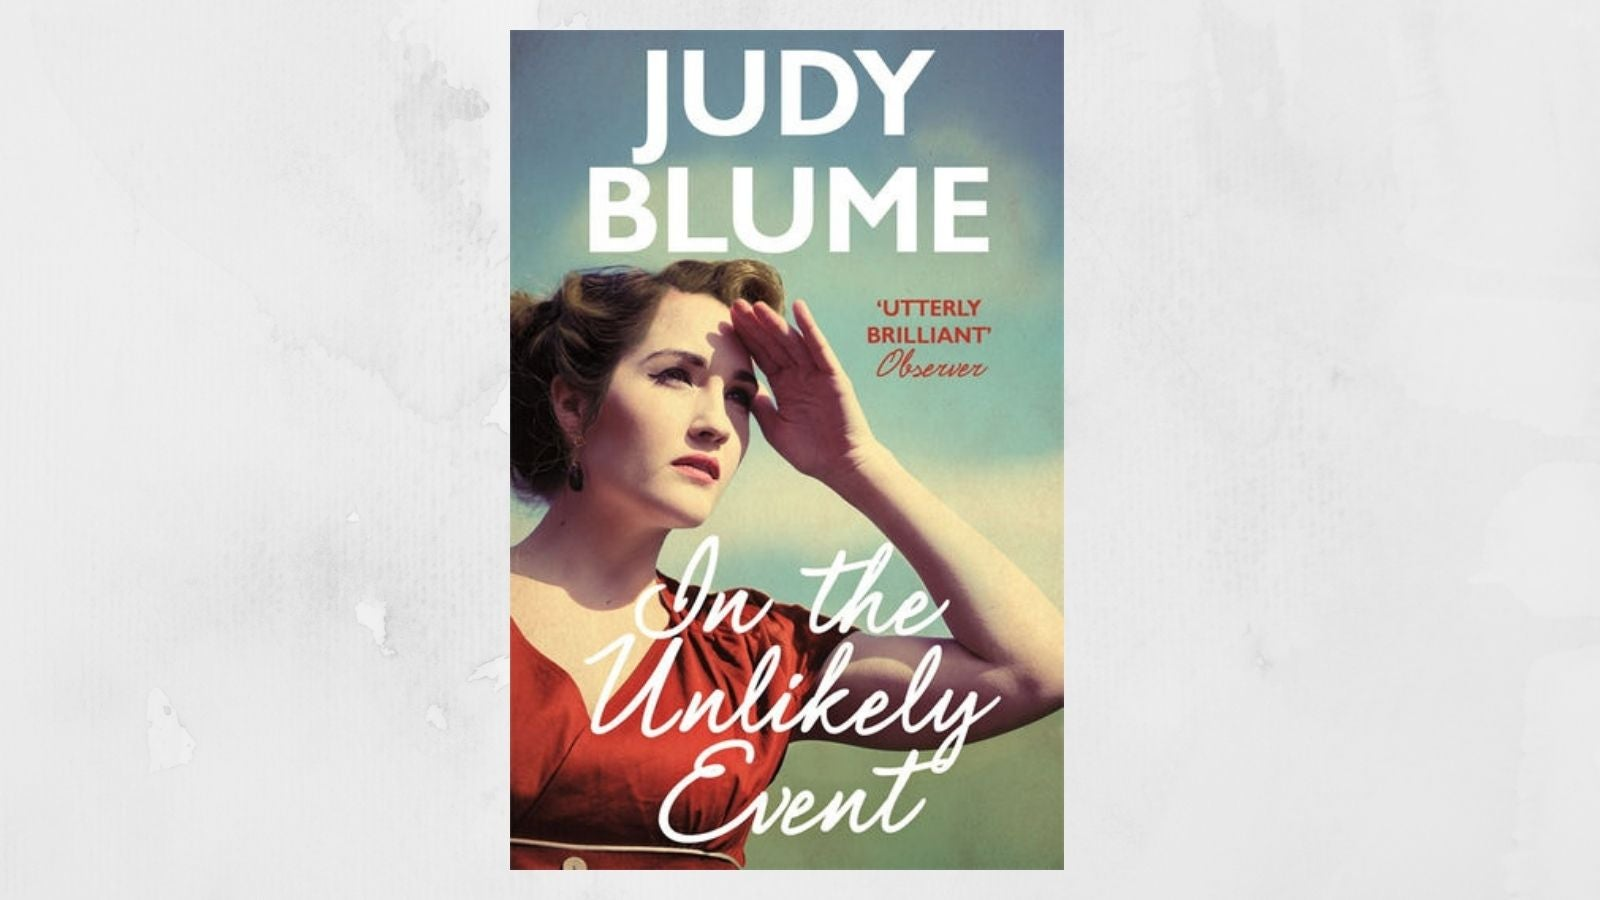 In the Unlikely Event Judy Blume book cover